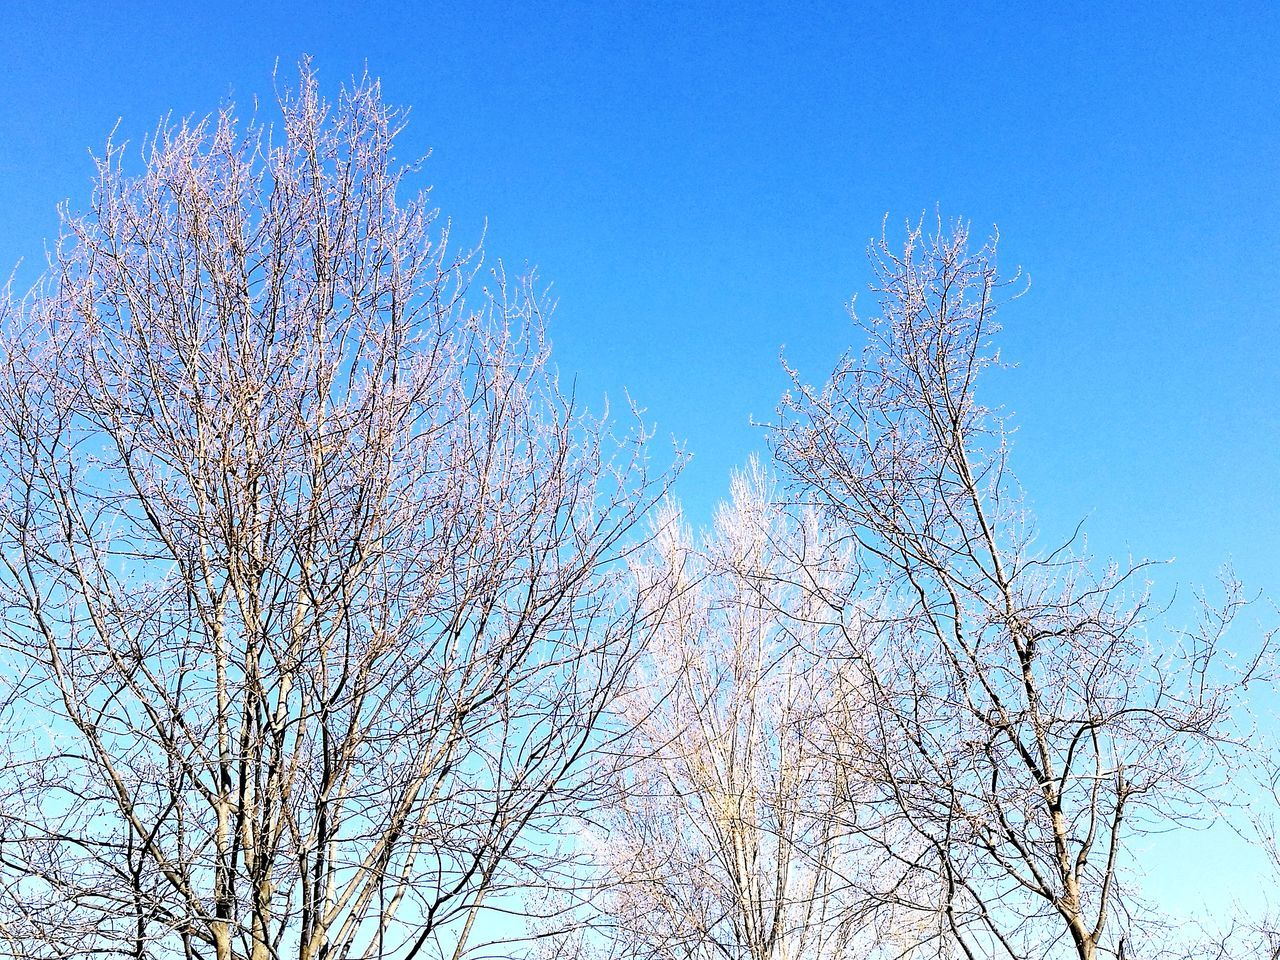 low angle view, tree, nature, branch, blue, clear sky, bare tree, beauty in nature, no people, outdoors, day, growth, sky, freshness